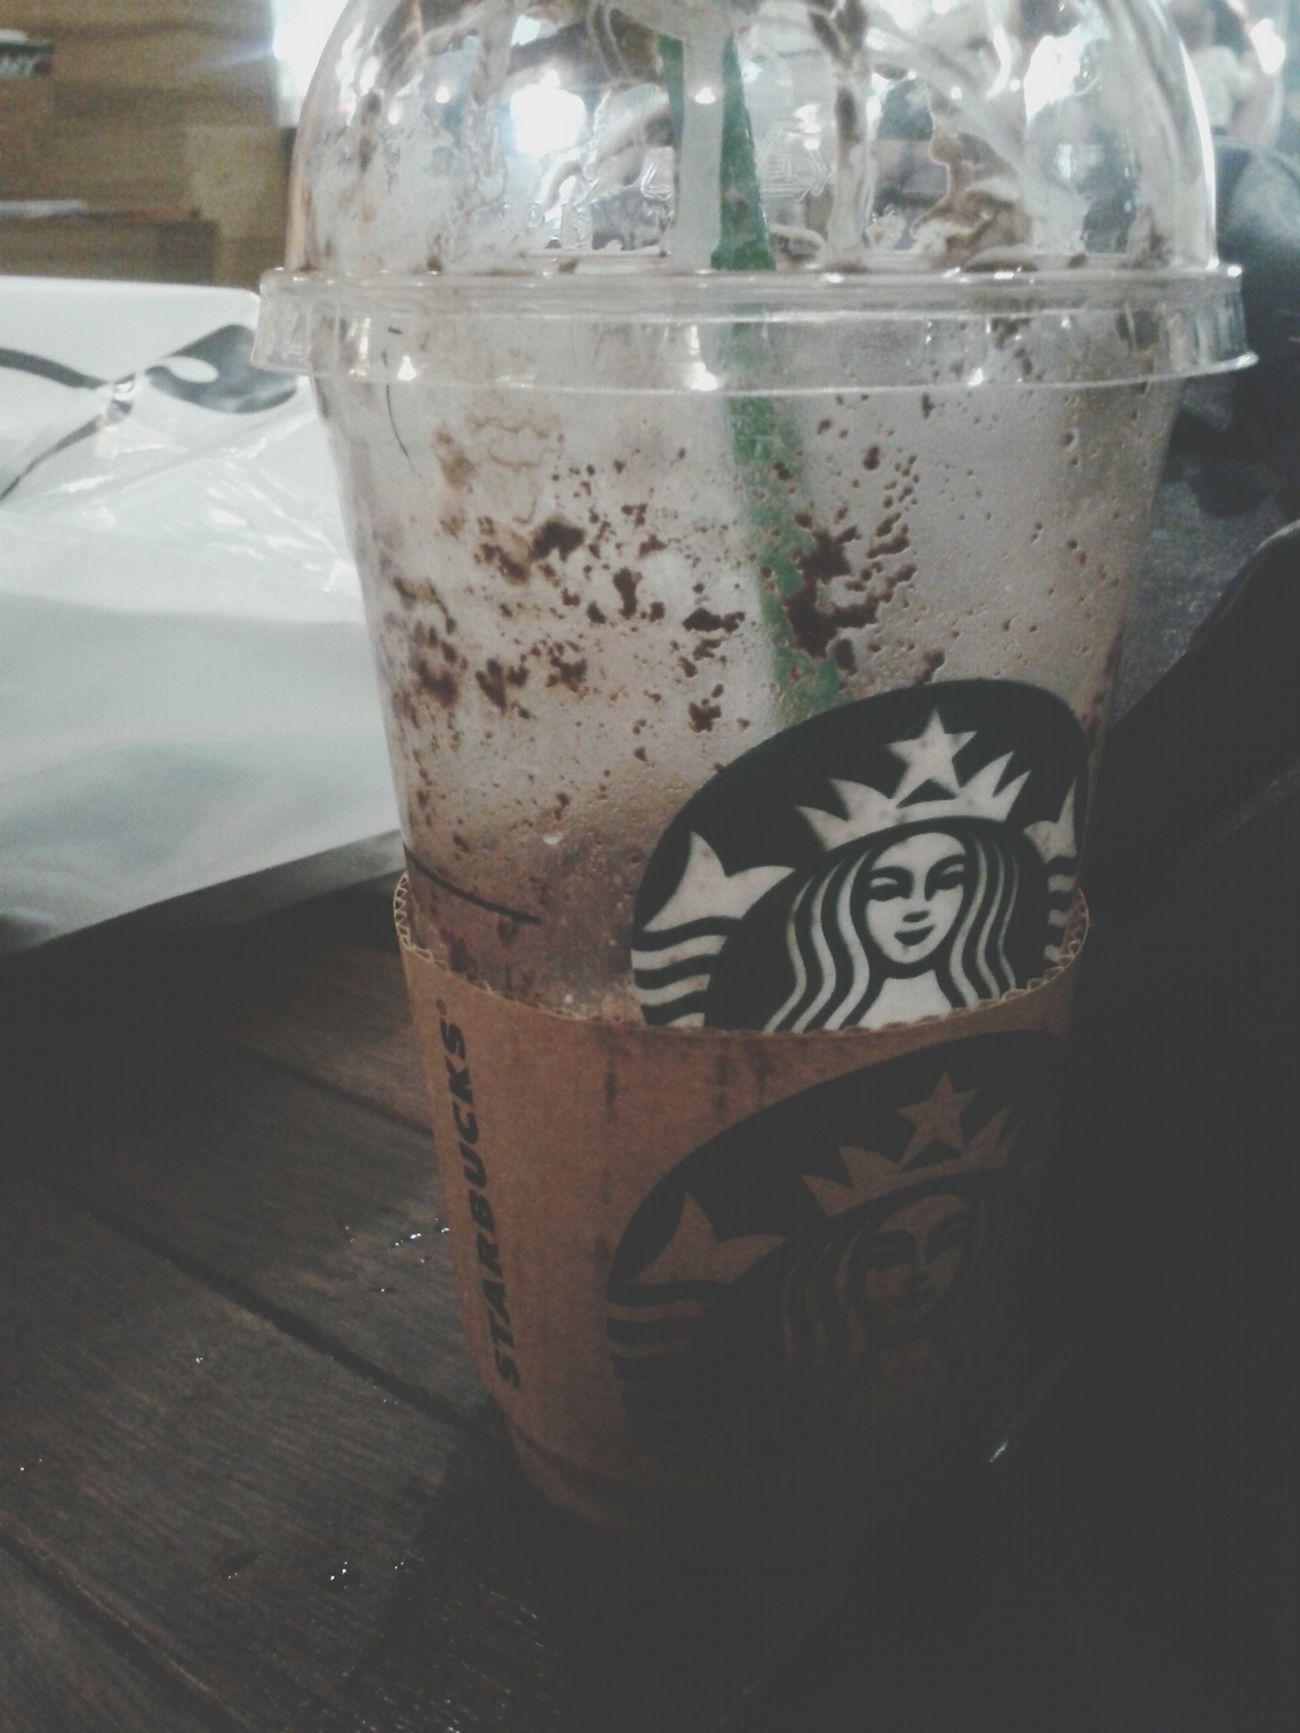 Drinking Starbucks Starbucks Hi! Happy